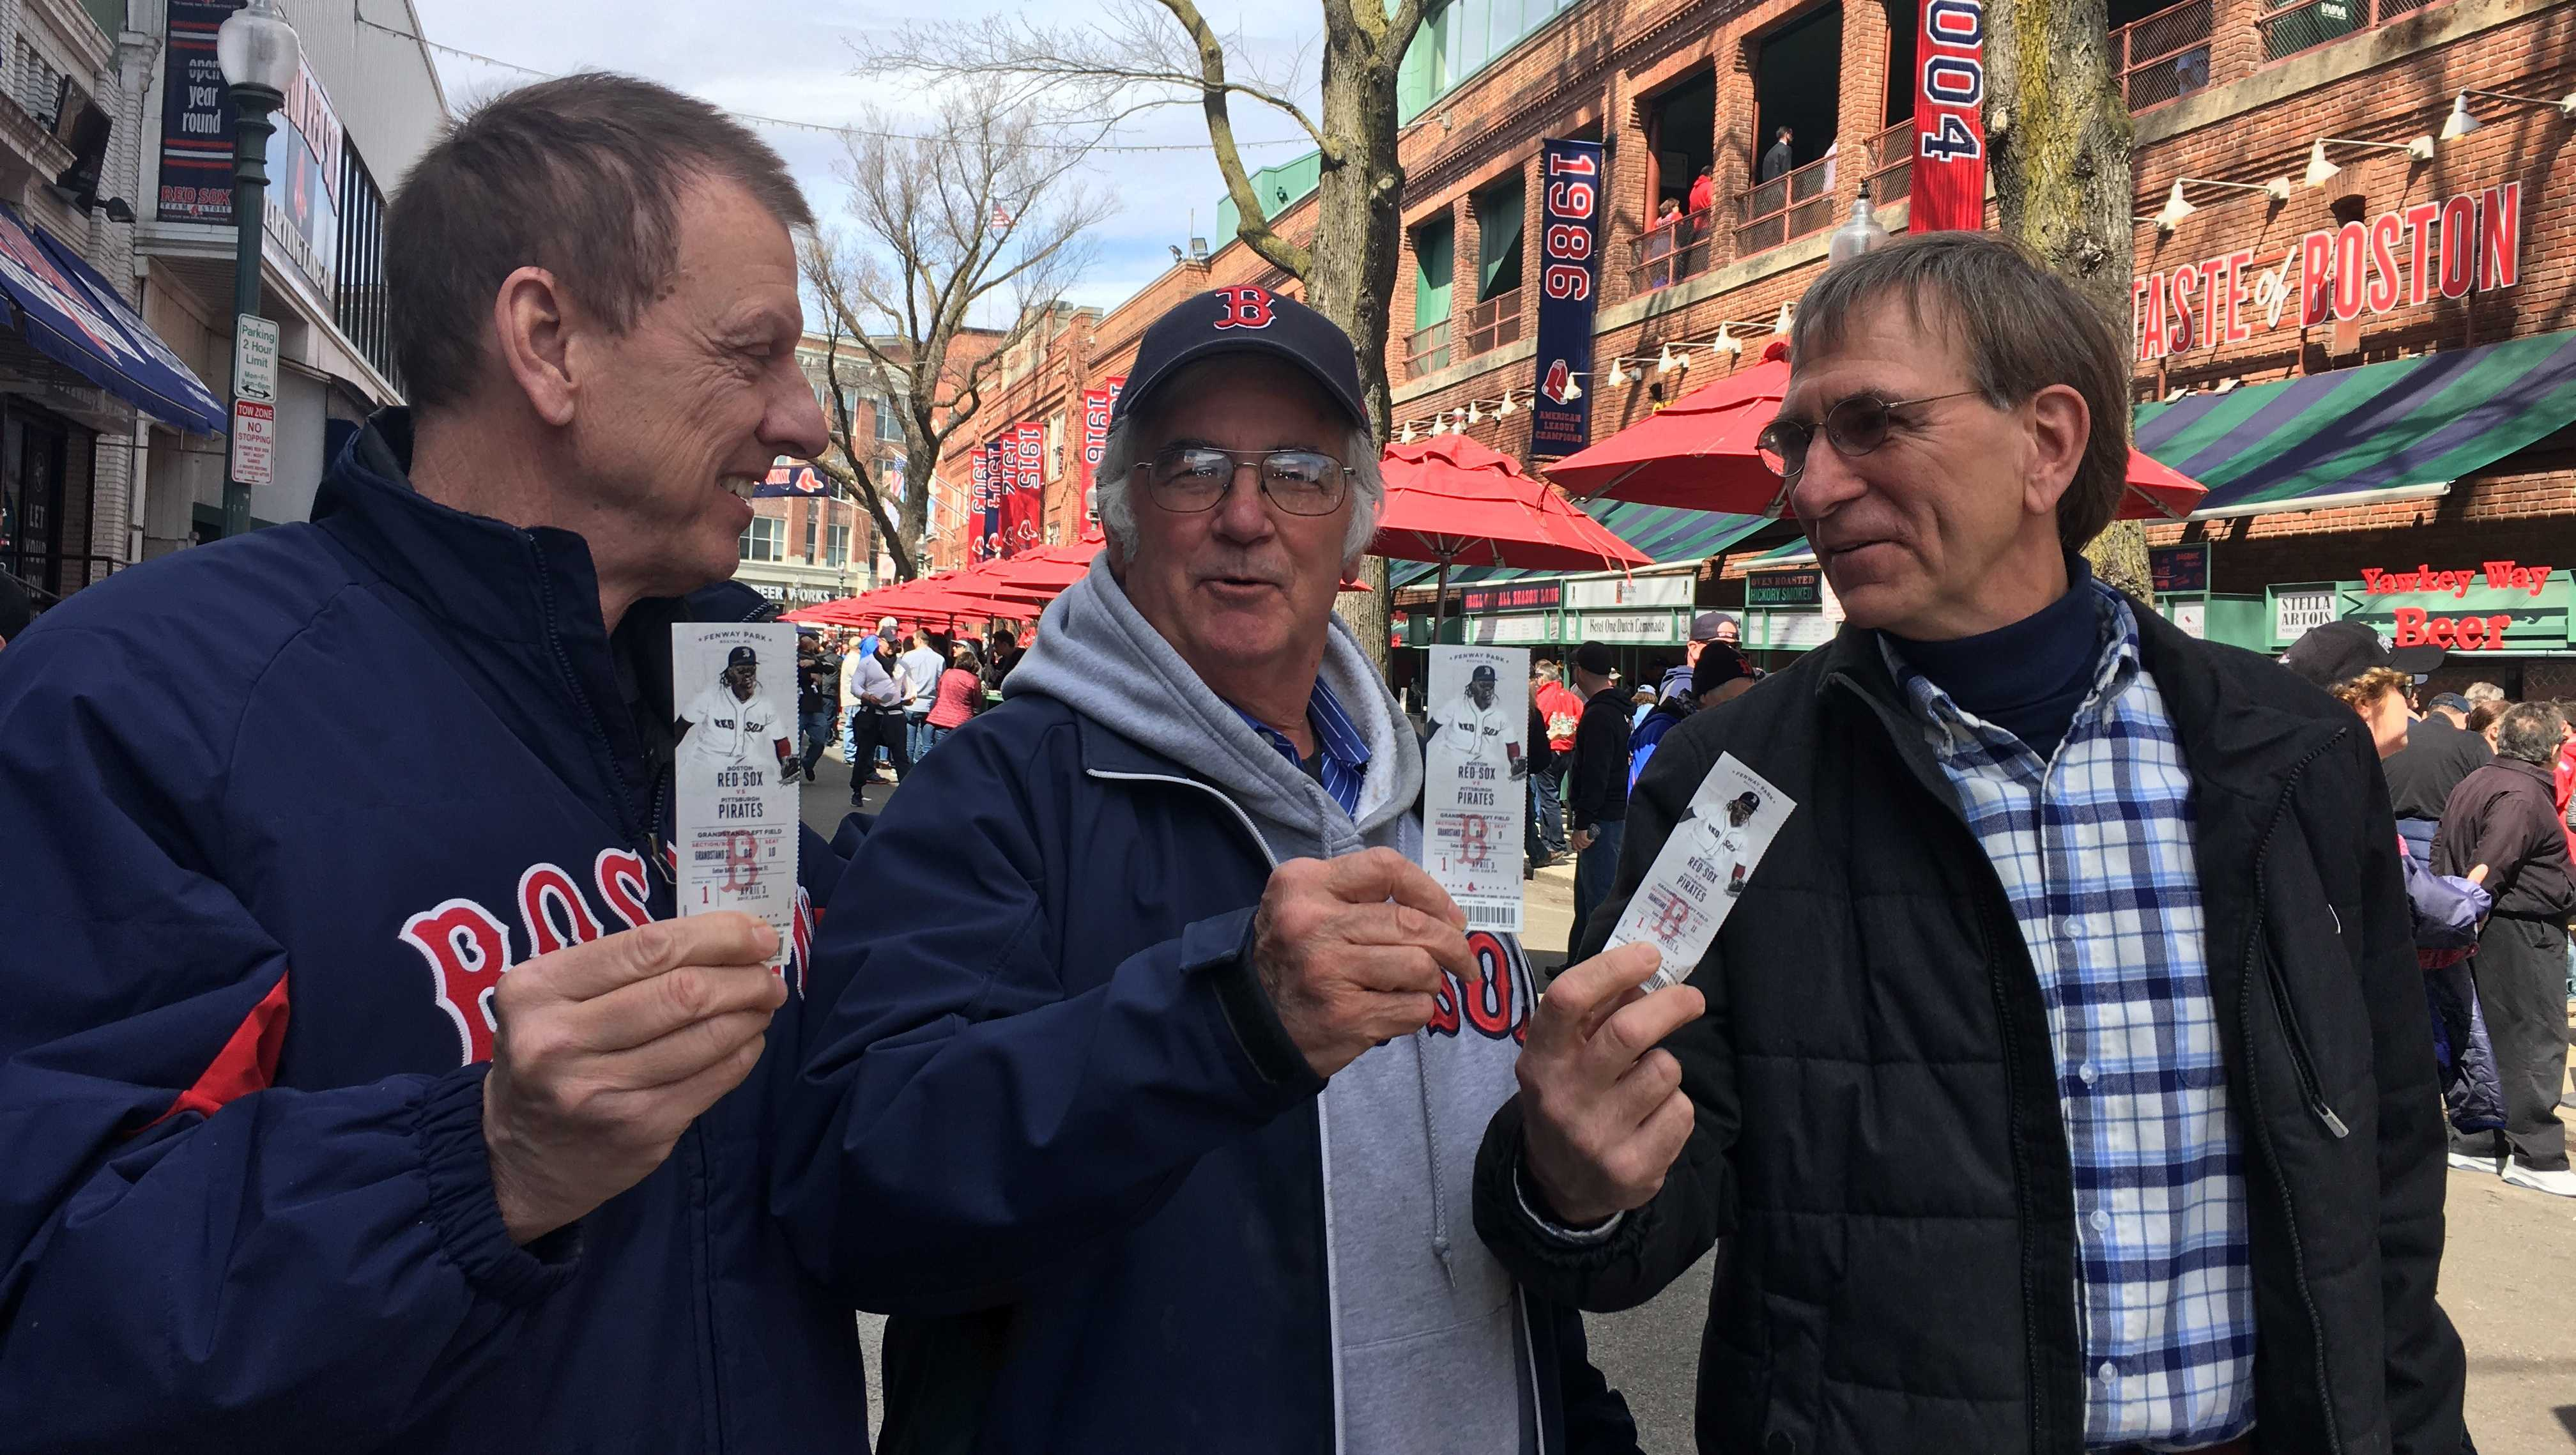 Three fans have attended opening day together for 50 years